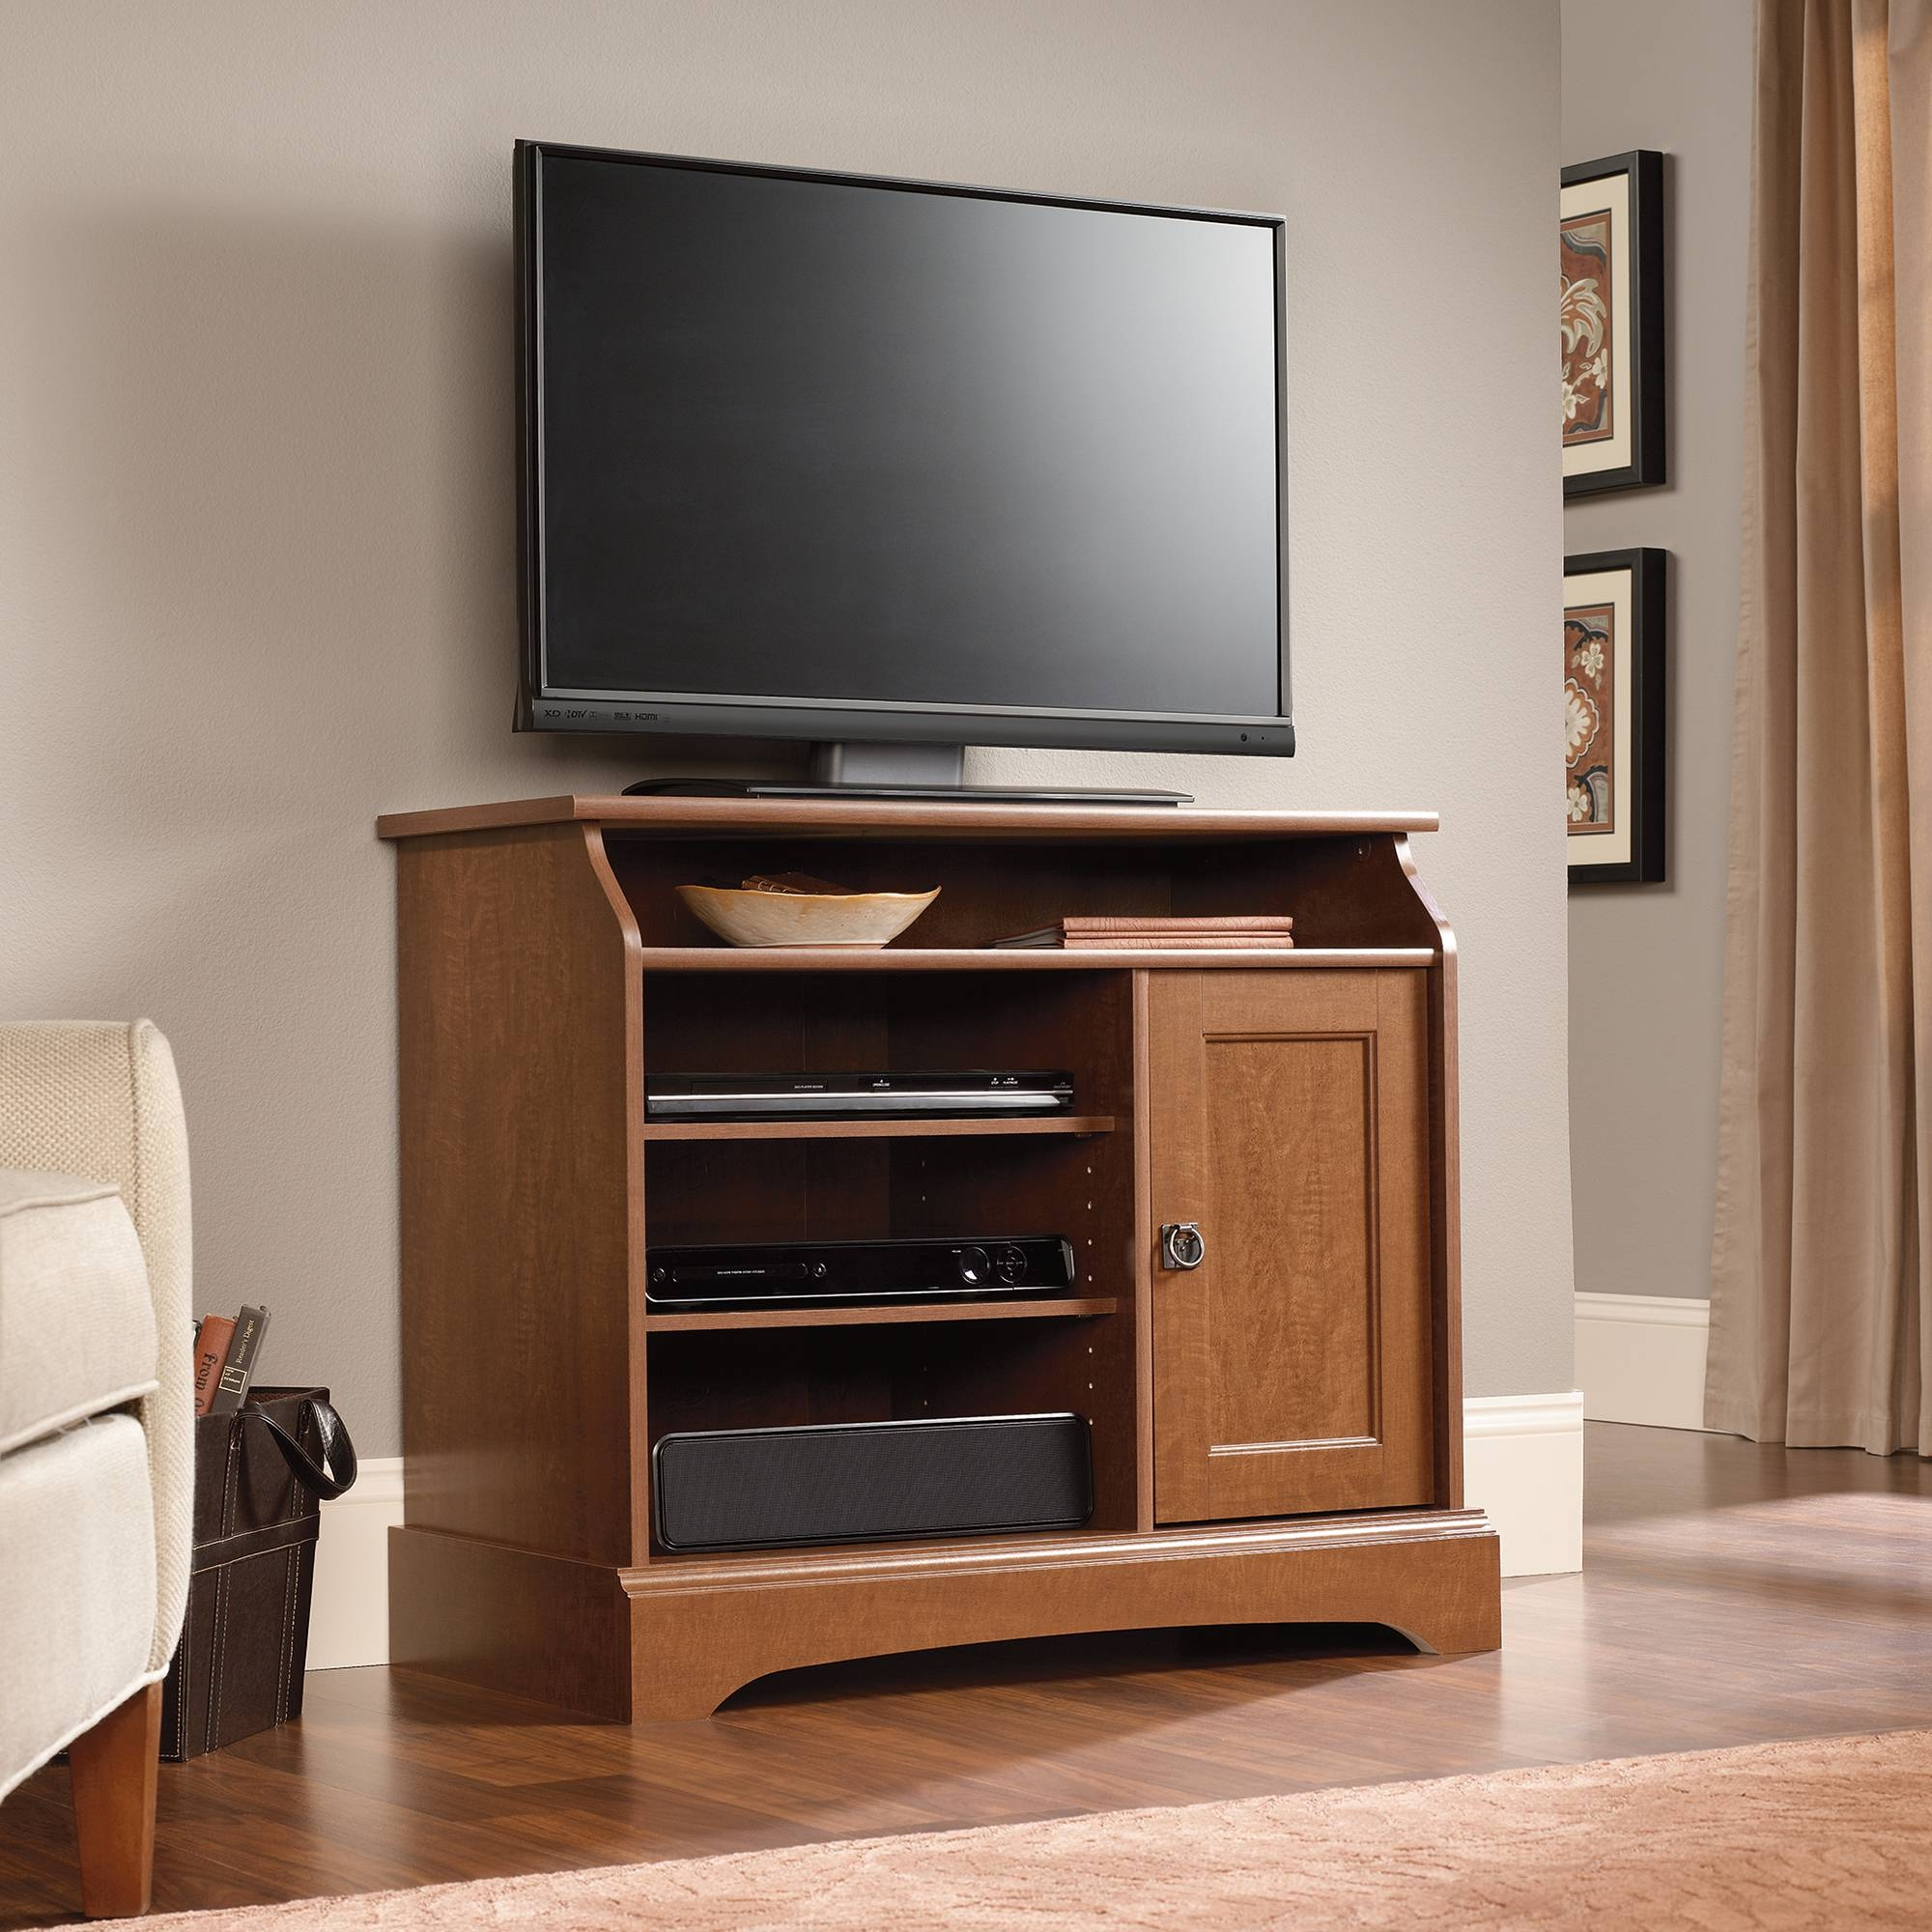 Sauder Select | Highboy Tv Stand | 408972 | Sauder in Maple Tv Stands for Flat Screens (Image 5 of 15)